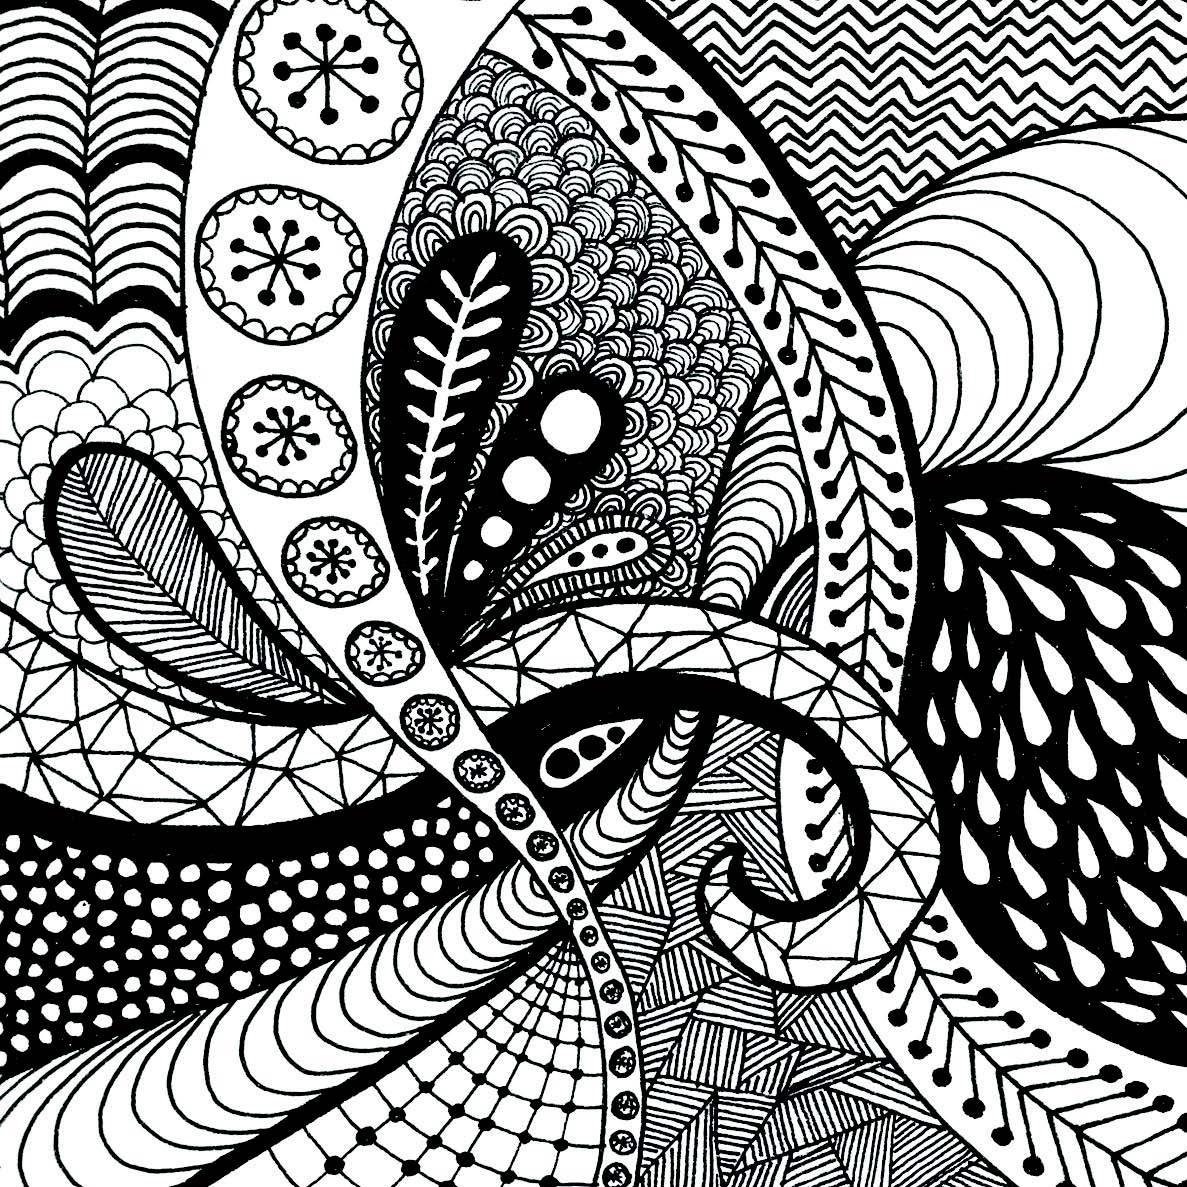 1187x1187 Stunning Zentangle Patterns Coloring Pages Colouring Of Flower